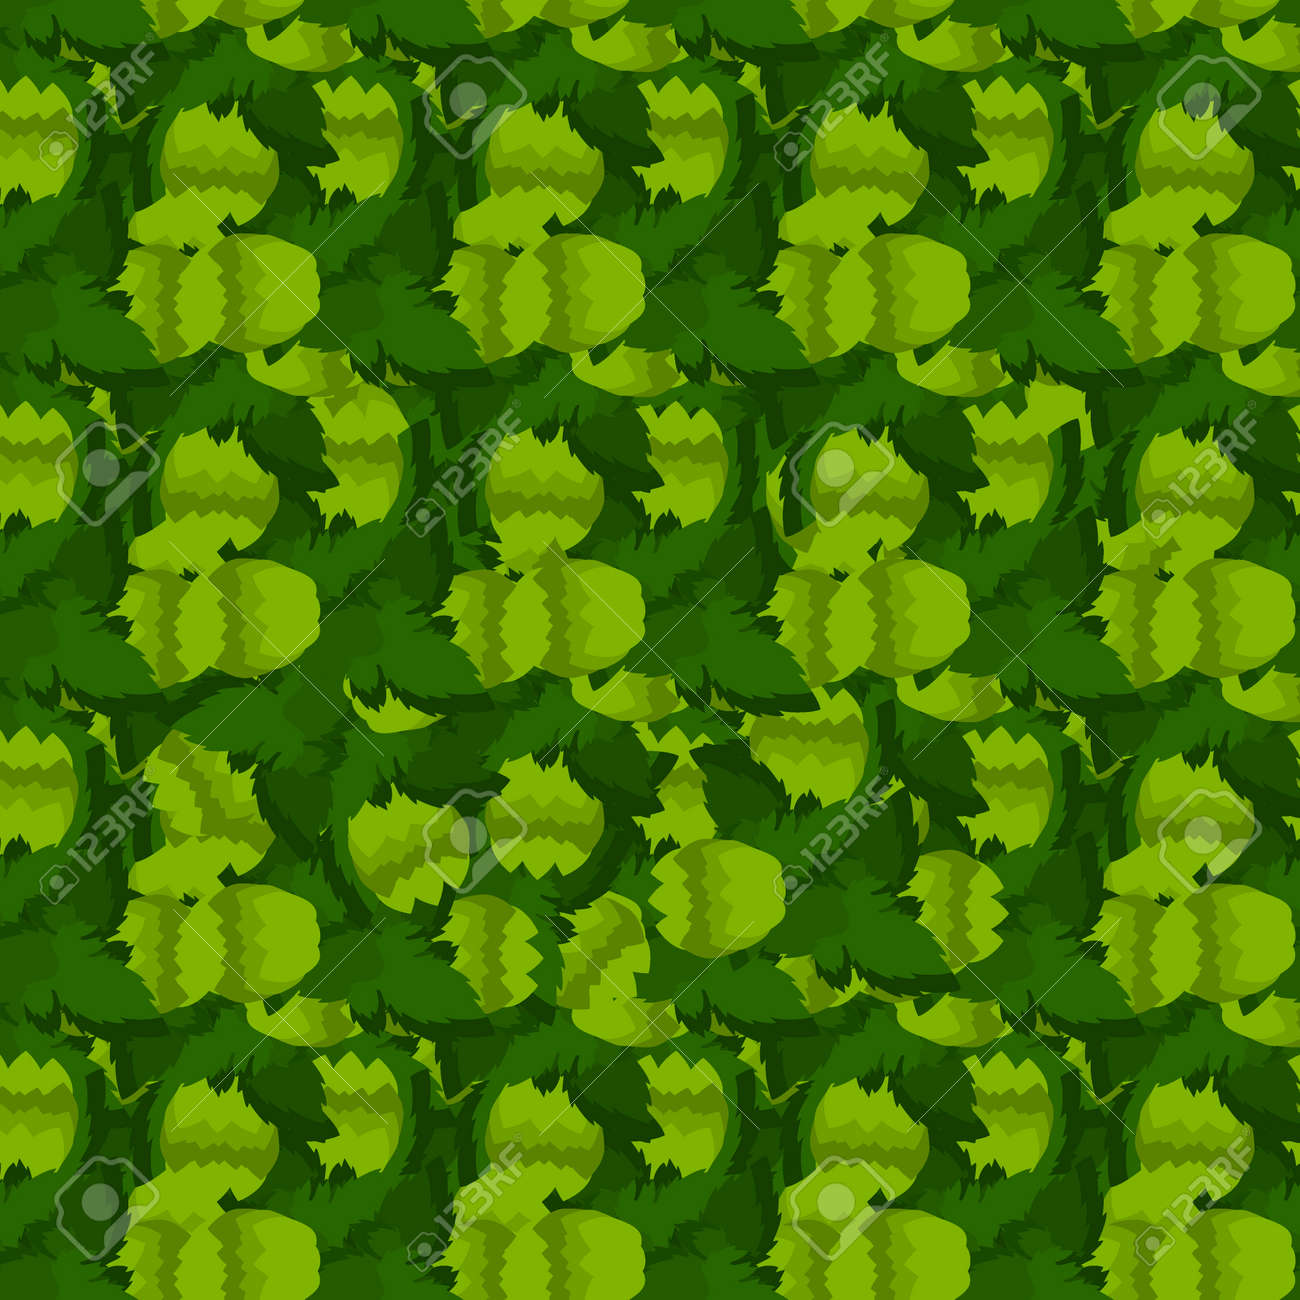 Hops For Decoration Seamless Pattern With Green Hops And Leaves Vector Illustration